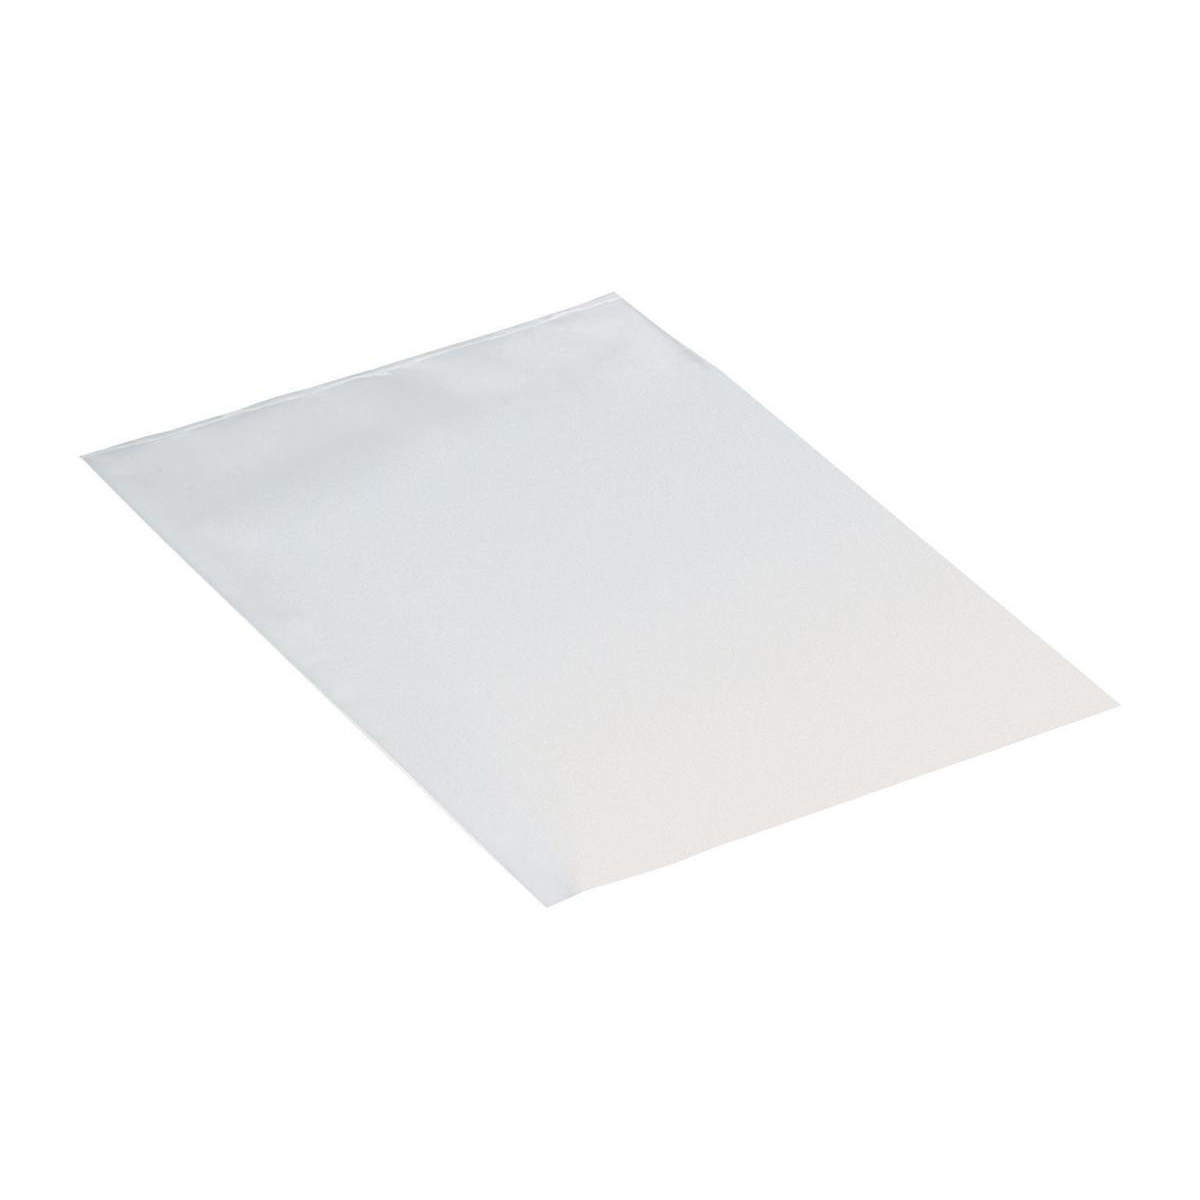 Polybags Polythene Lightweight 120 Gauge 375x500mm Transparent [Pack 1000]